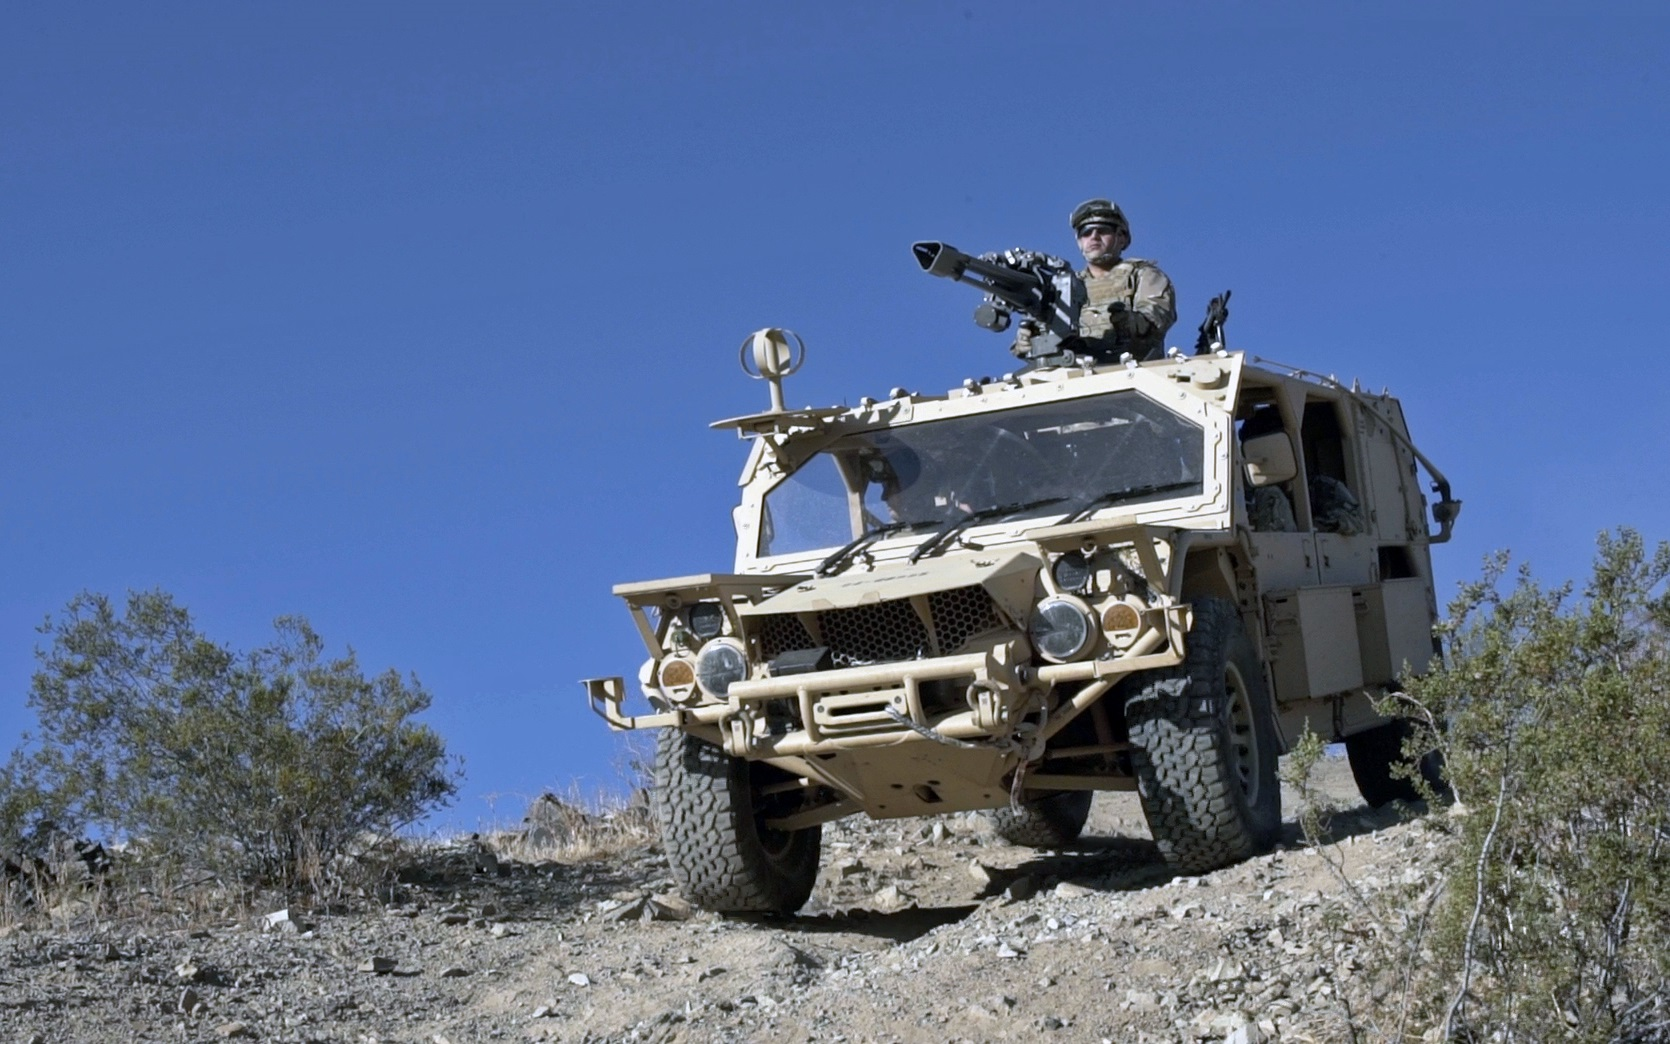 GUNNER1 - U.S. Army looks to buy new lightweight gatling gun – Defence Blog